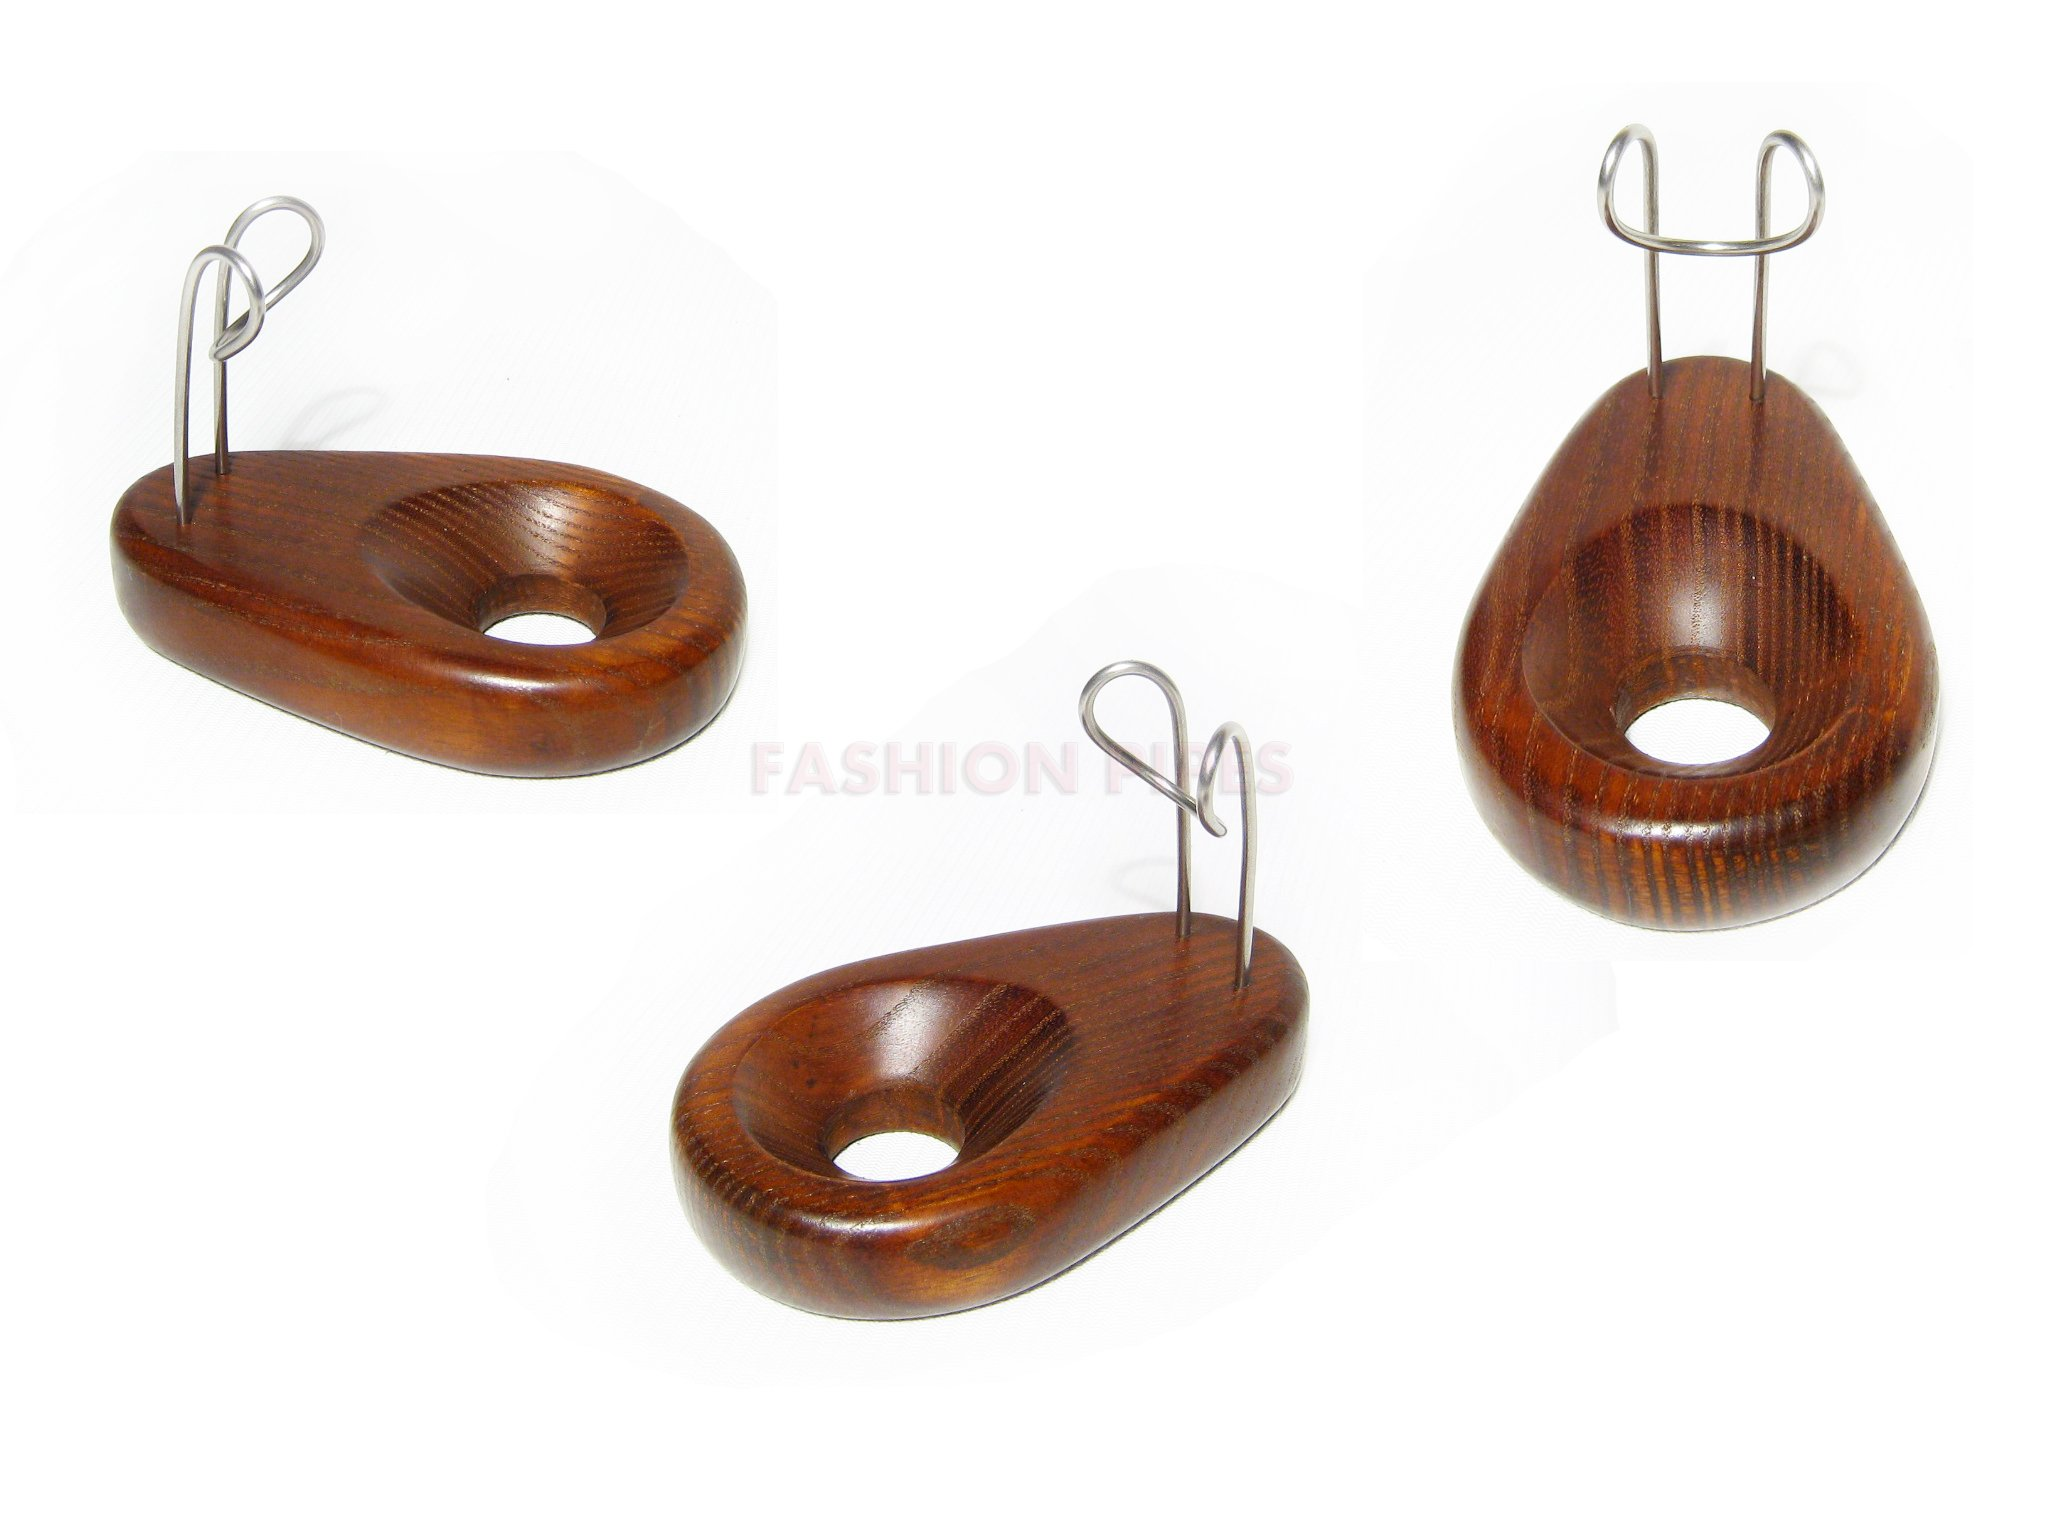 Ash-Tree Wooden Pipe Stand-Showcase '' SAIL '', NEW Rack Holder for Tobacco Pipe, Smoking Pipes. New Handcrafted Pipe Stand